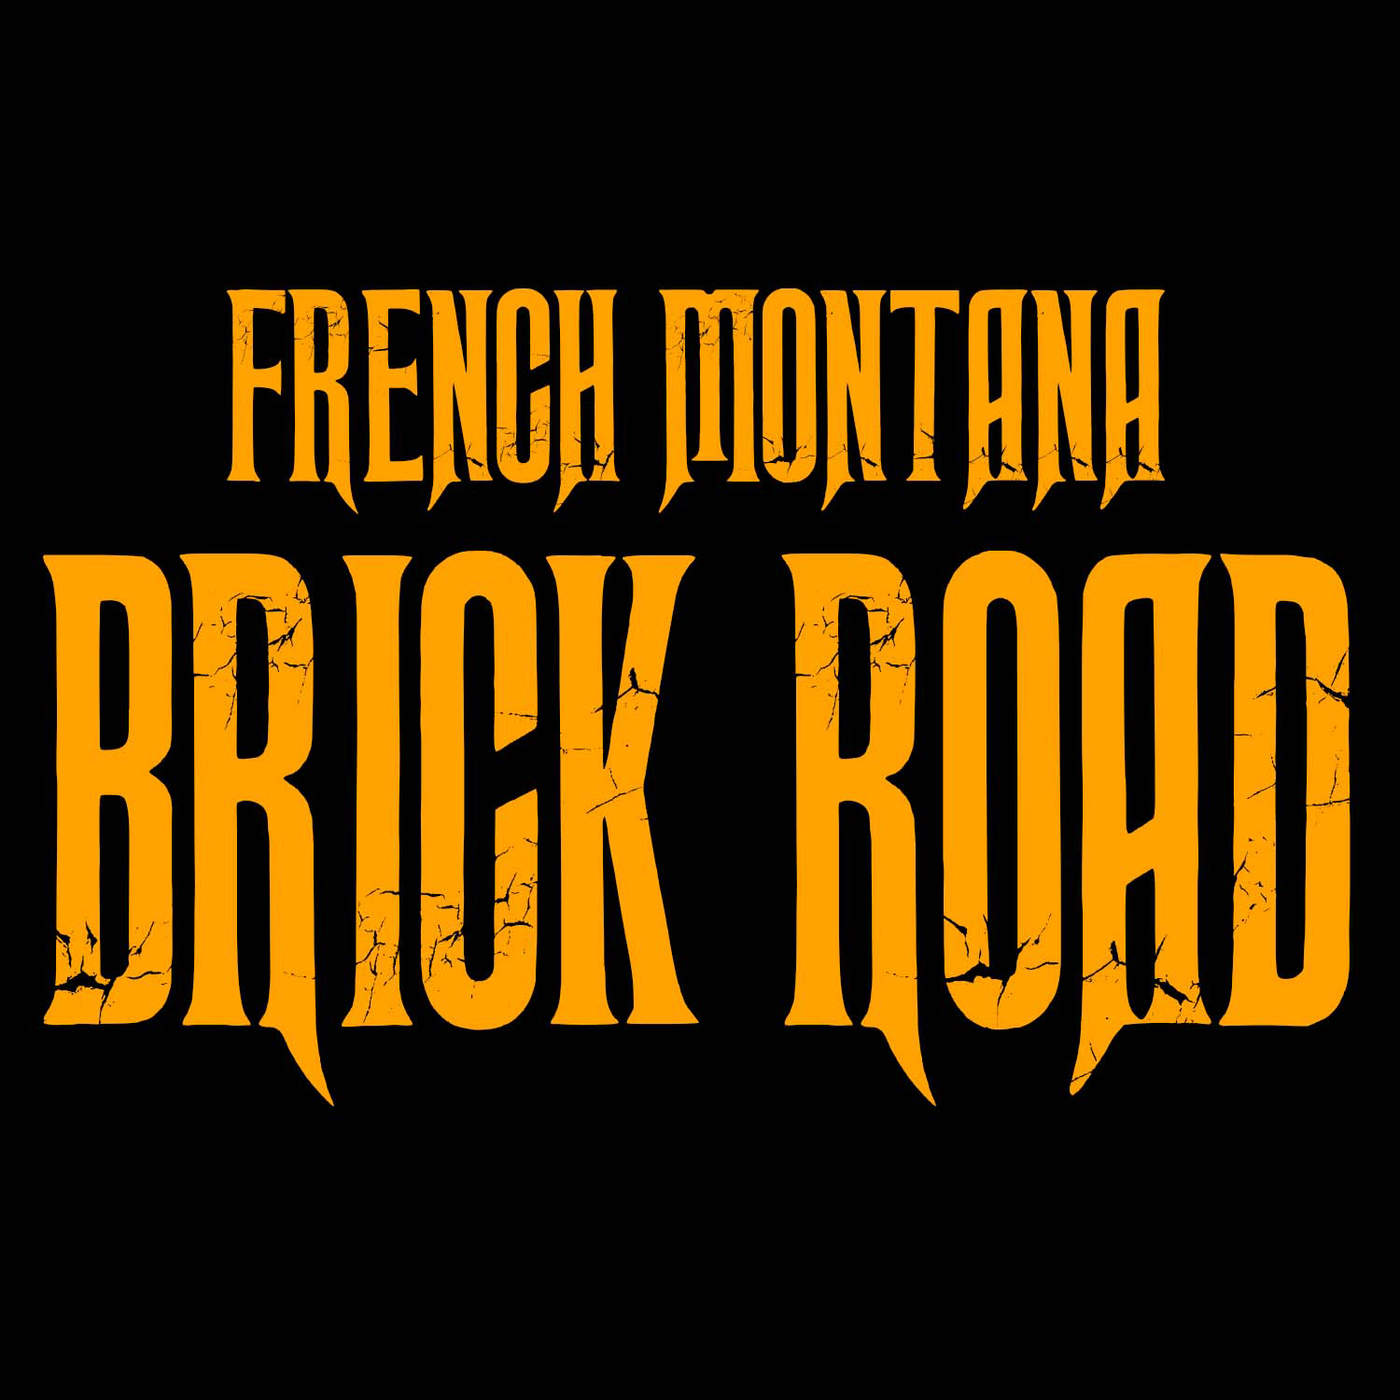 French Montana - Brick Road - Single Cover